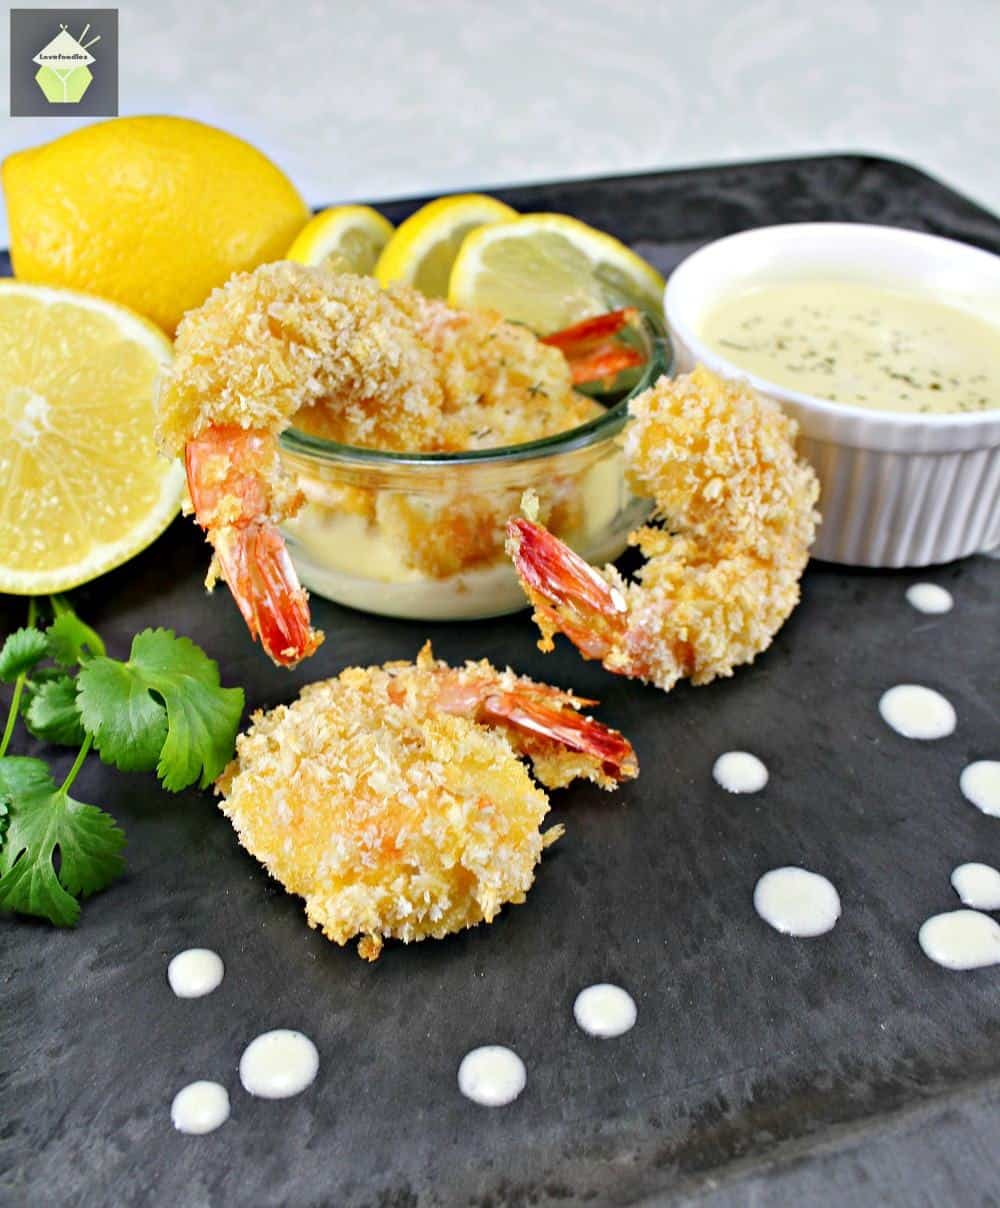 Lemon and Garlic Butter Sauce  This is delicious served with seafood